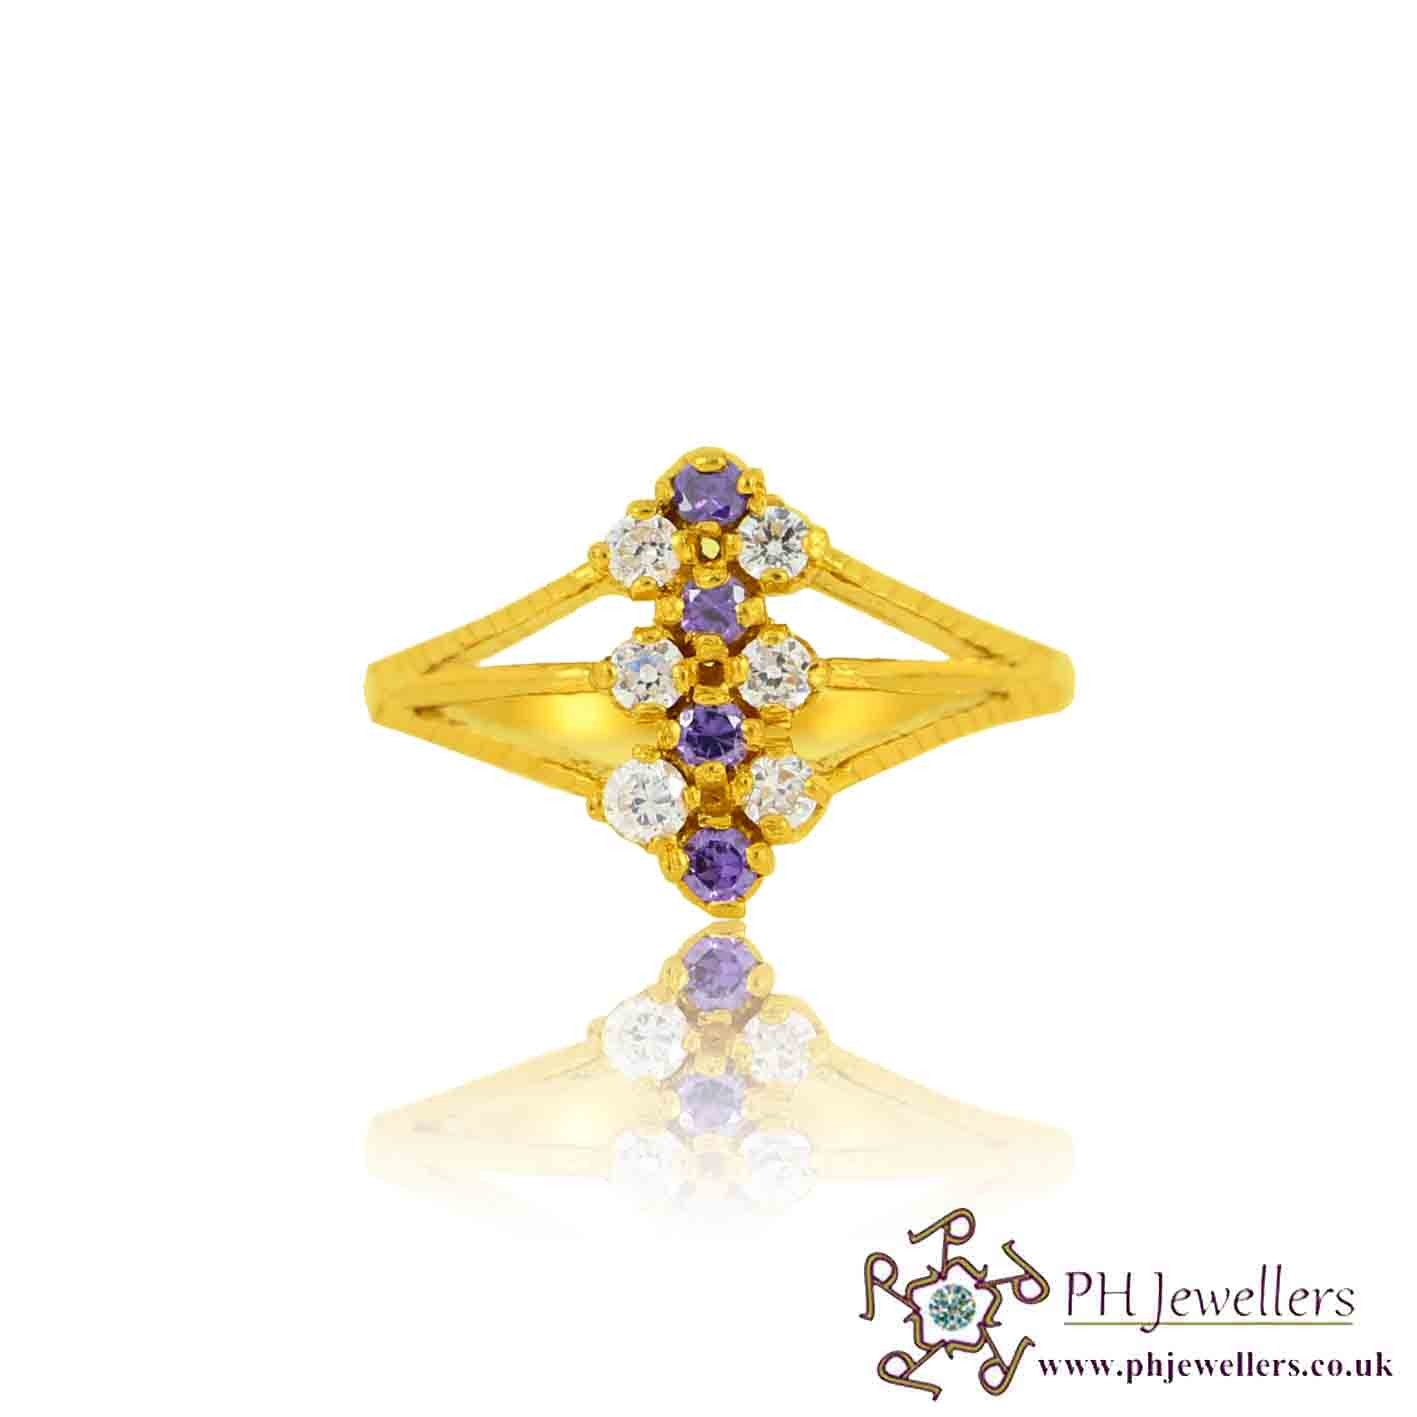 22ct 916 Yellow Gold Hallmark Amethyst  Ring CZ Size O SR125